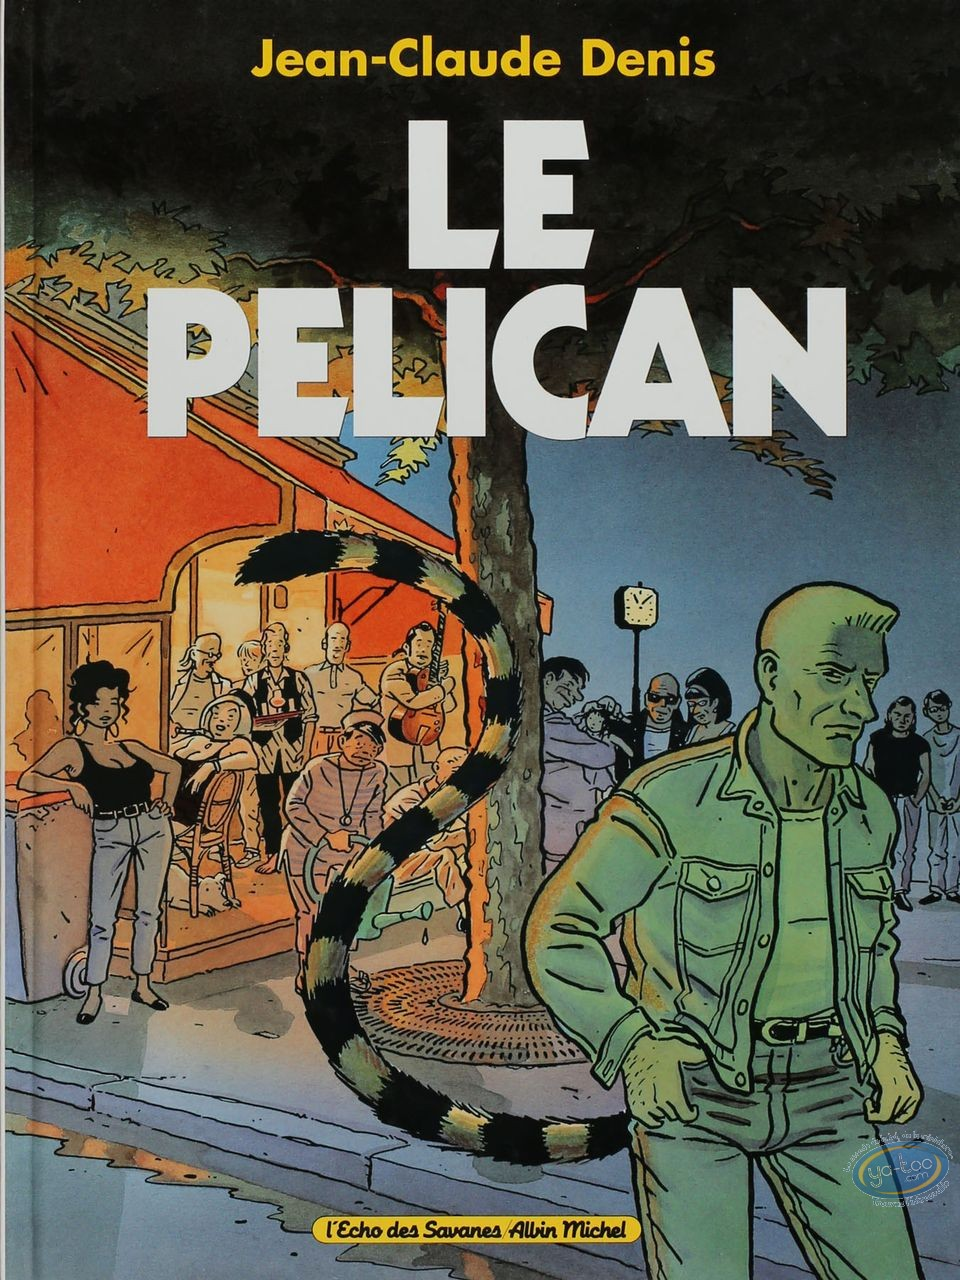 Listed European Comic Books, Pélican (Le) : Le Pelican